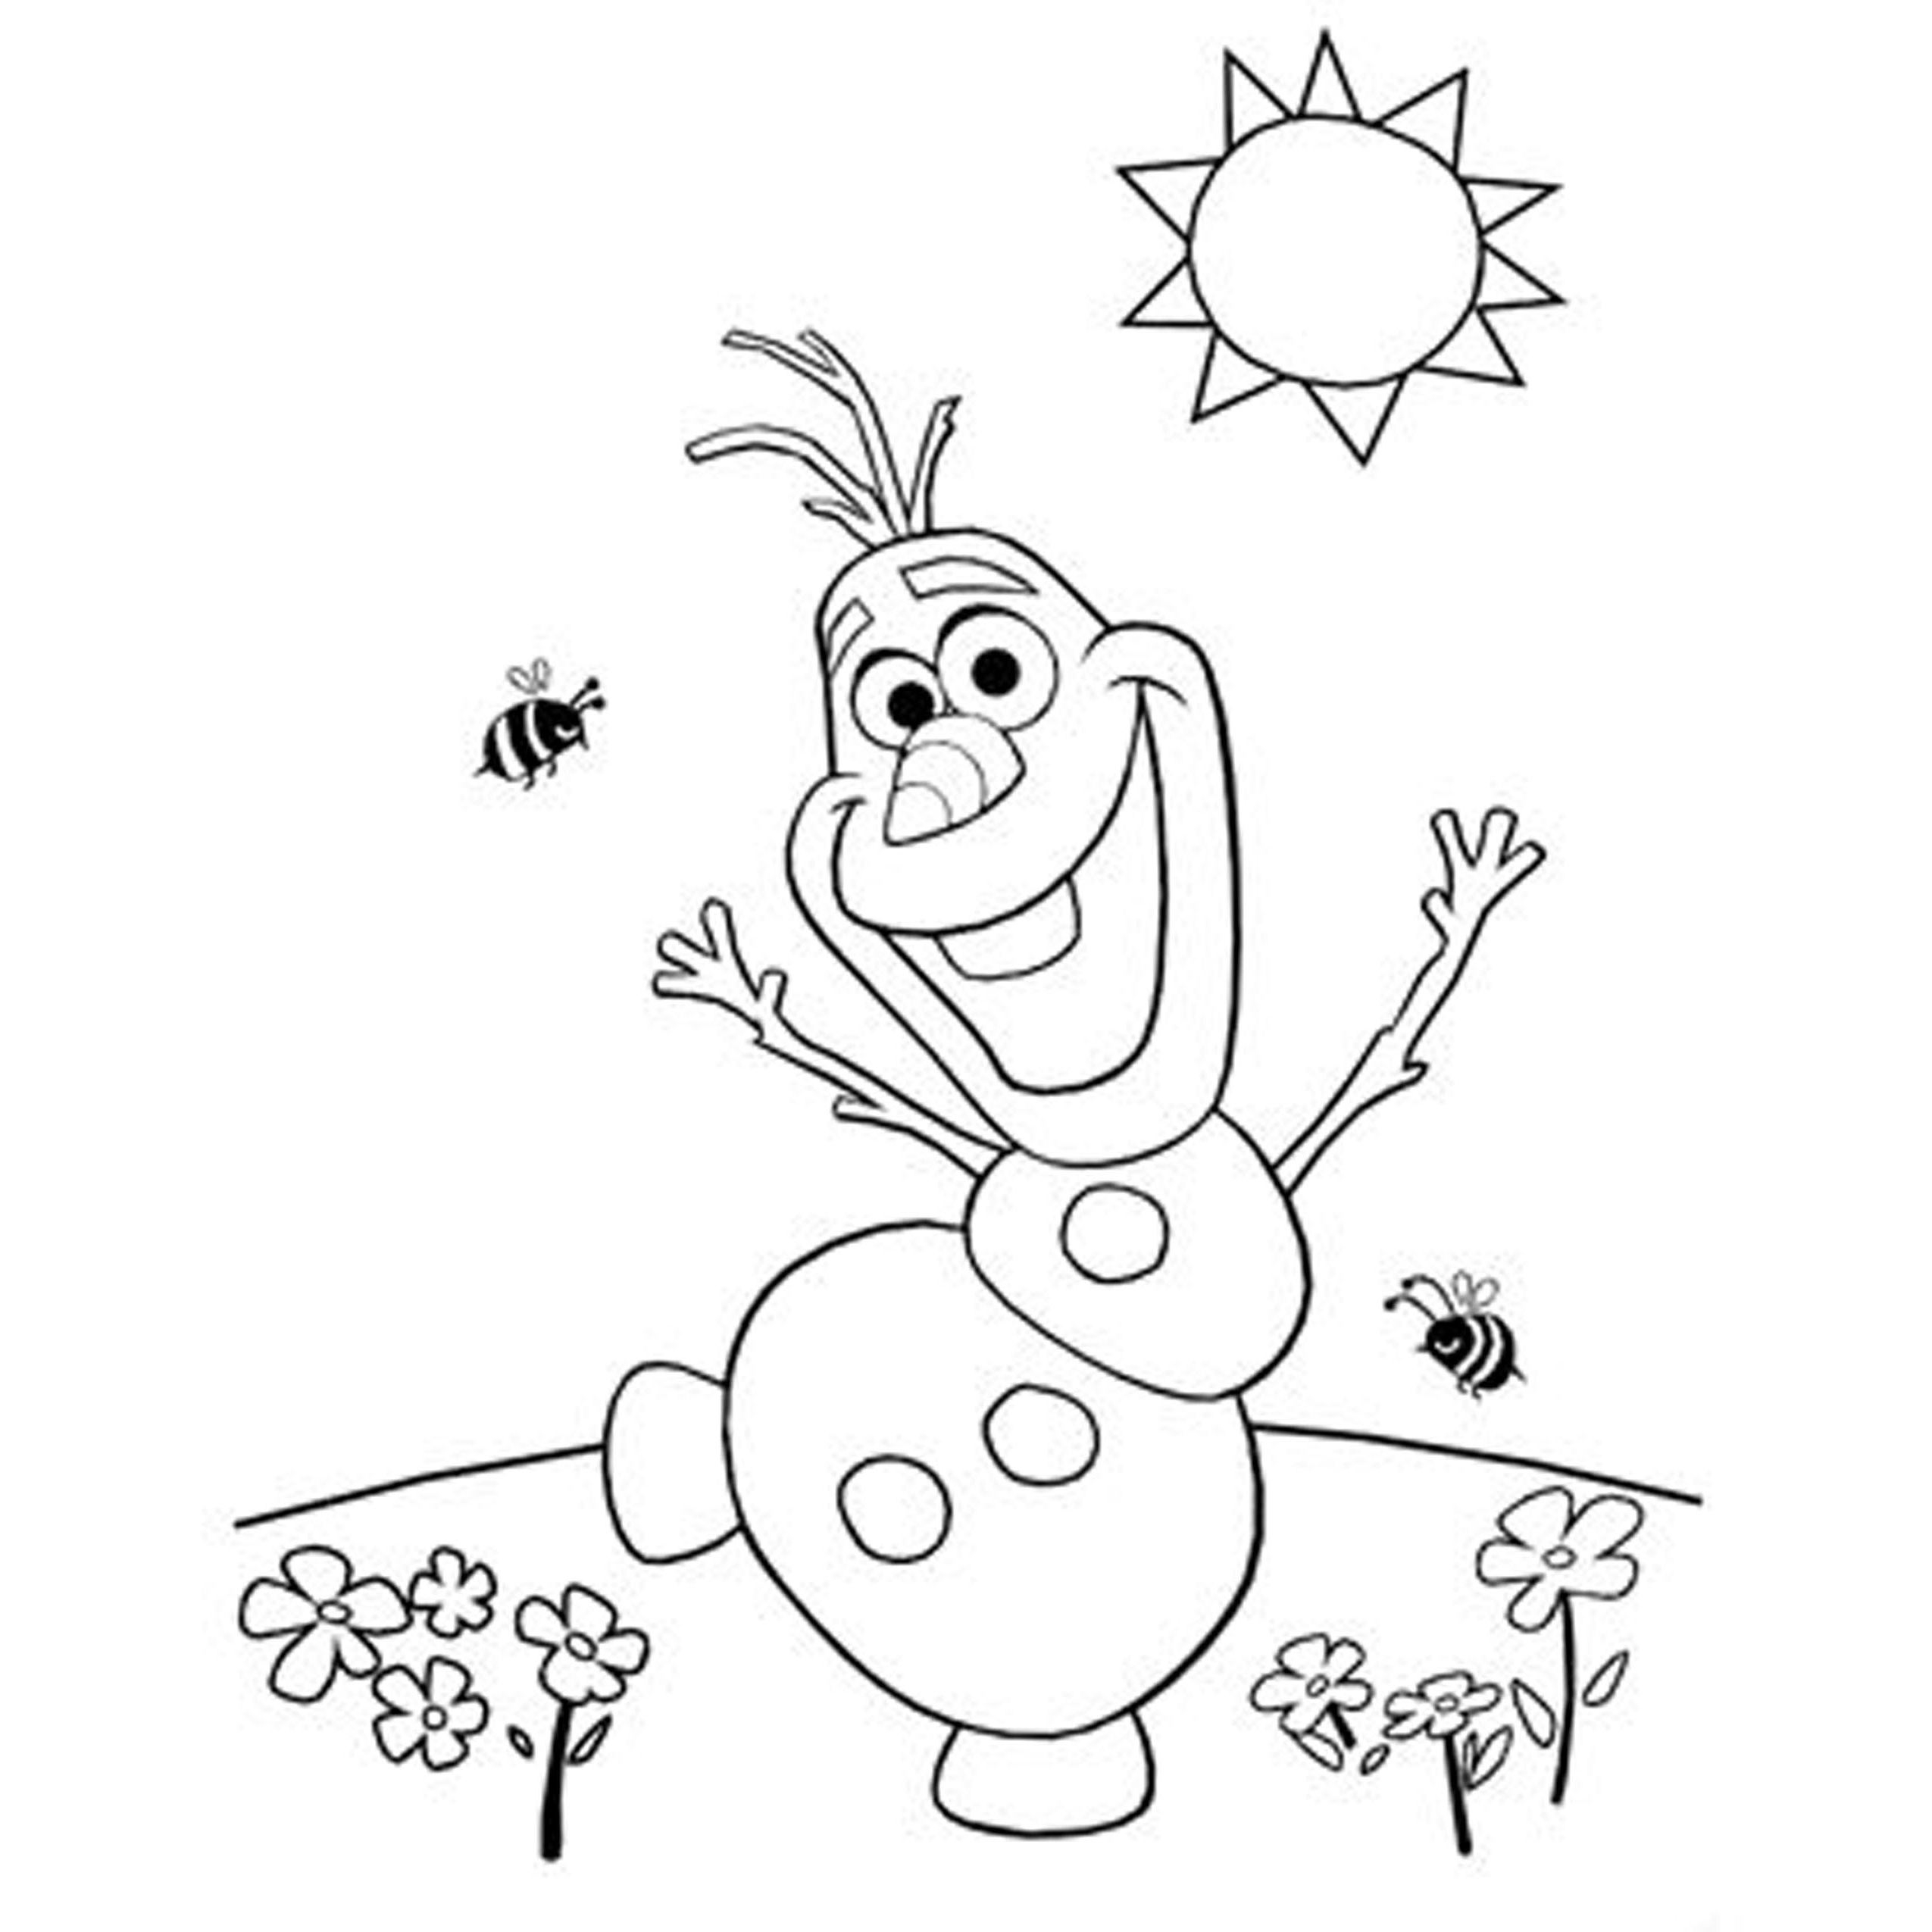 Free Printable Colouring Pages Disney Frozen Olaf Coloring Download Of Books And Simple